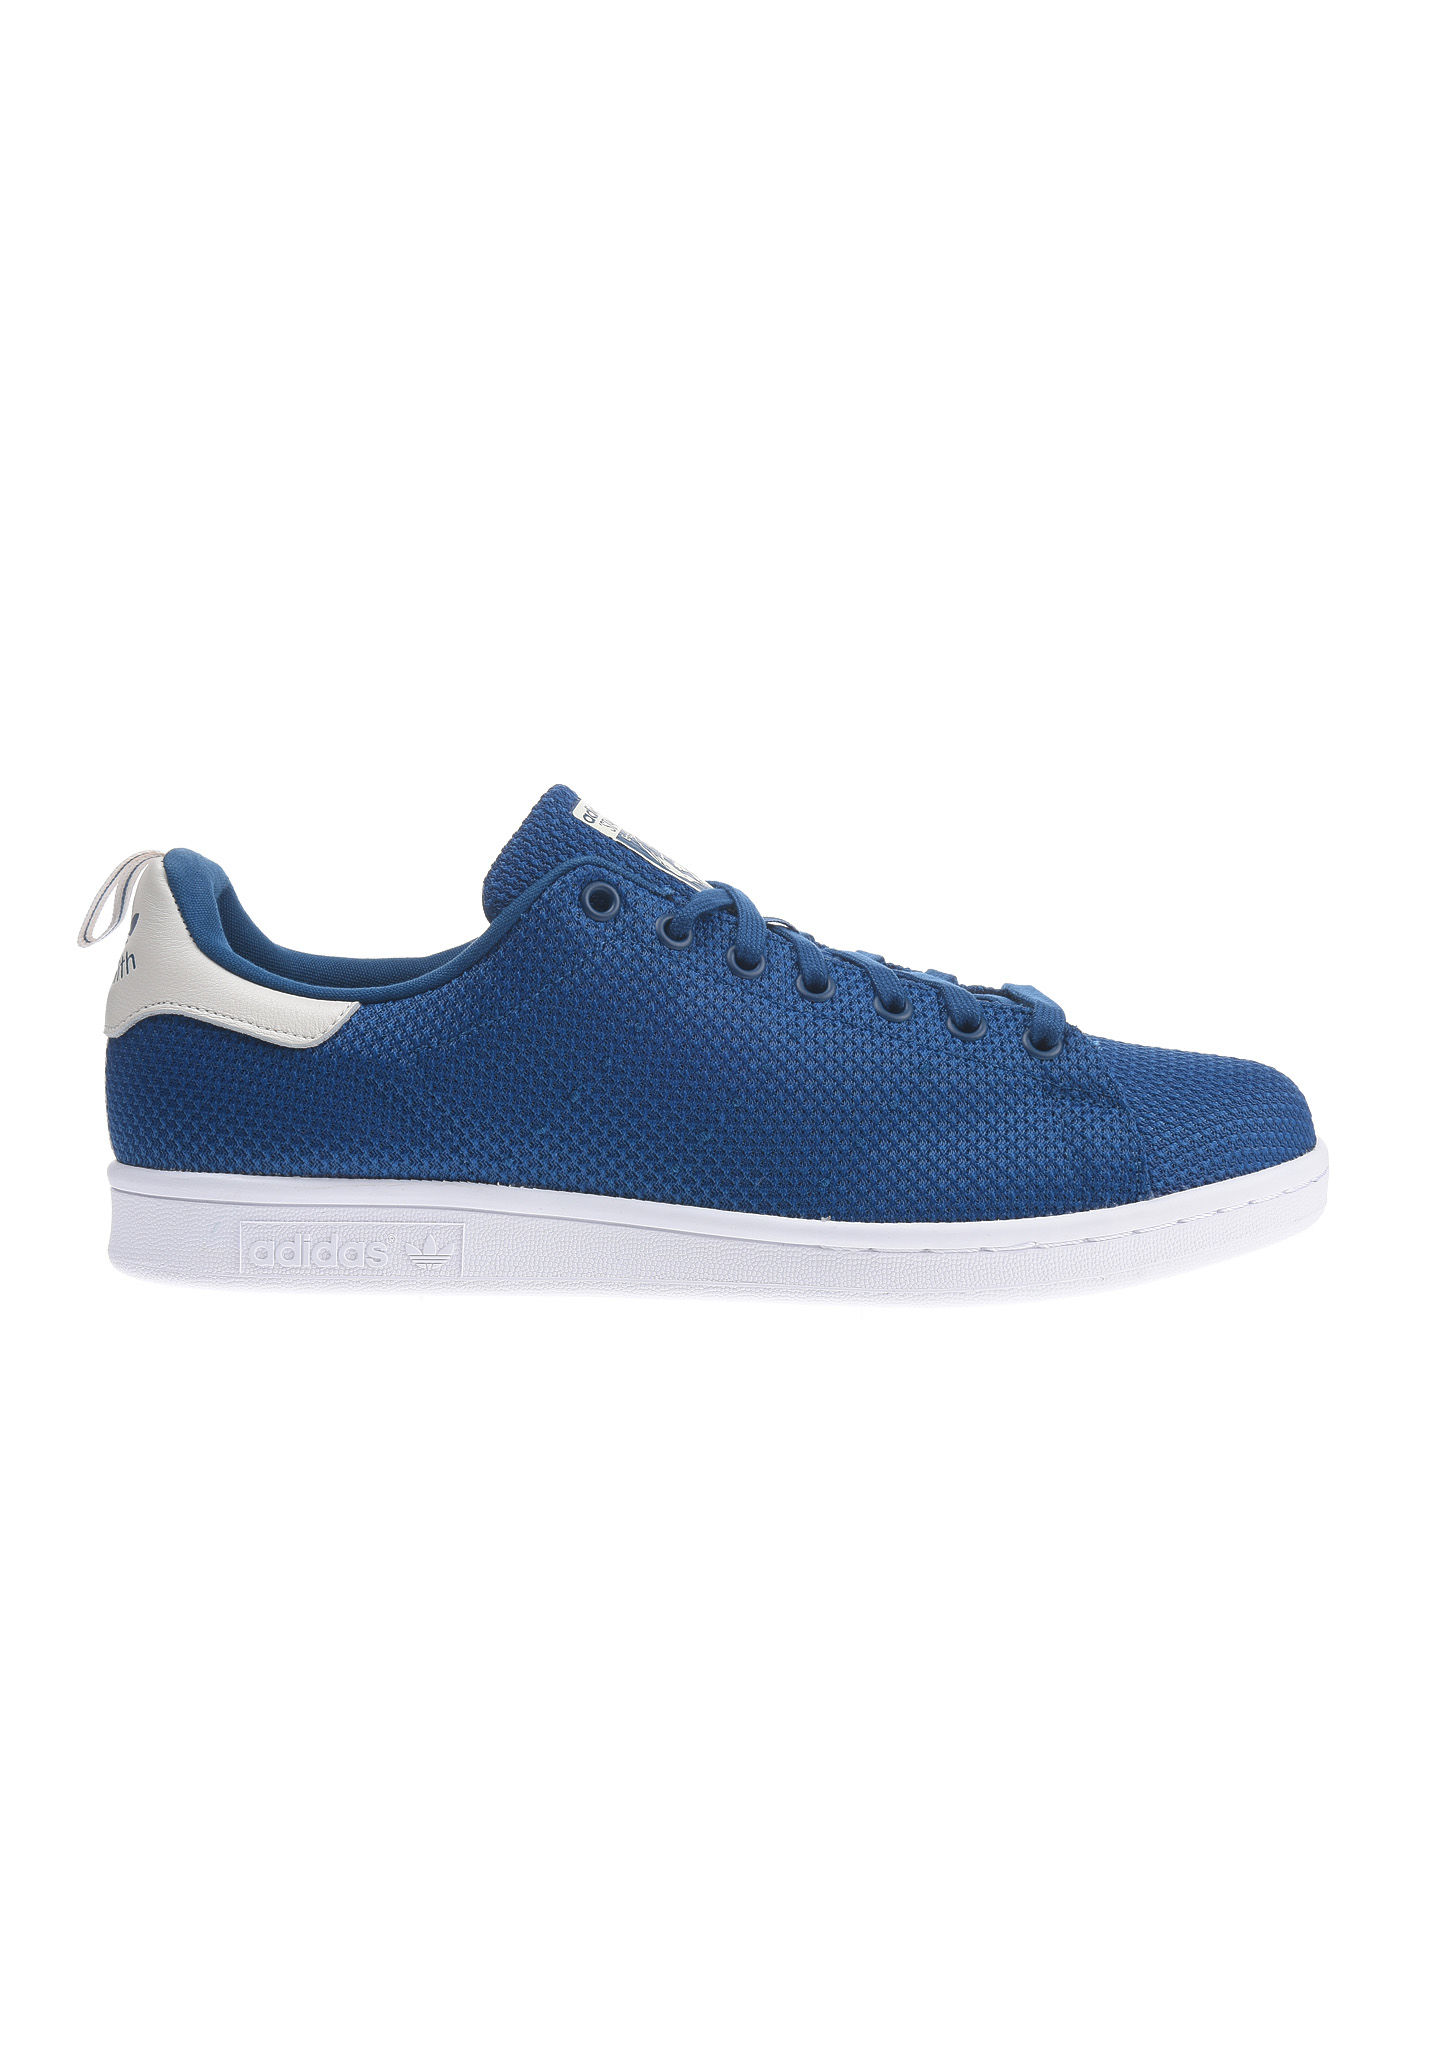 Adidas Stan Smith Herren Blau